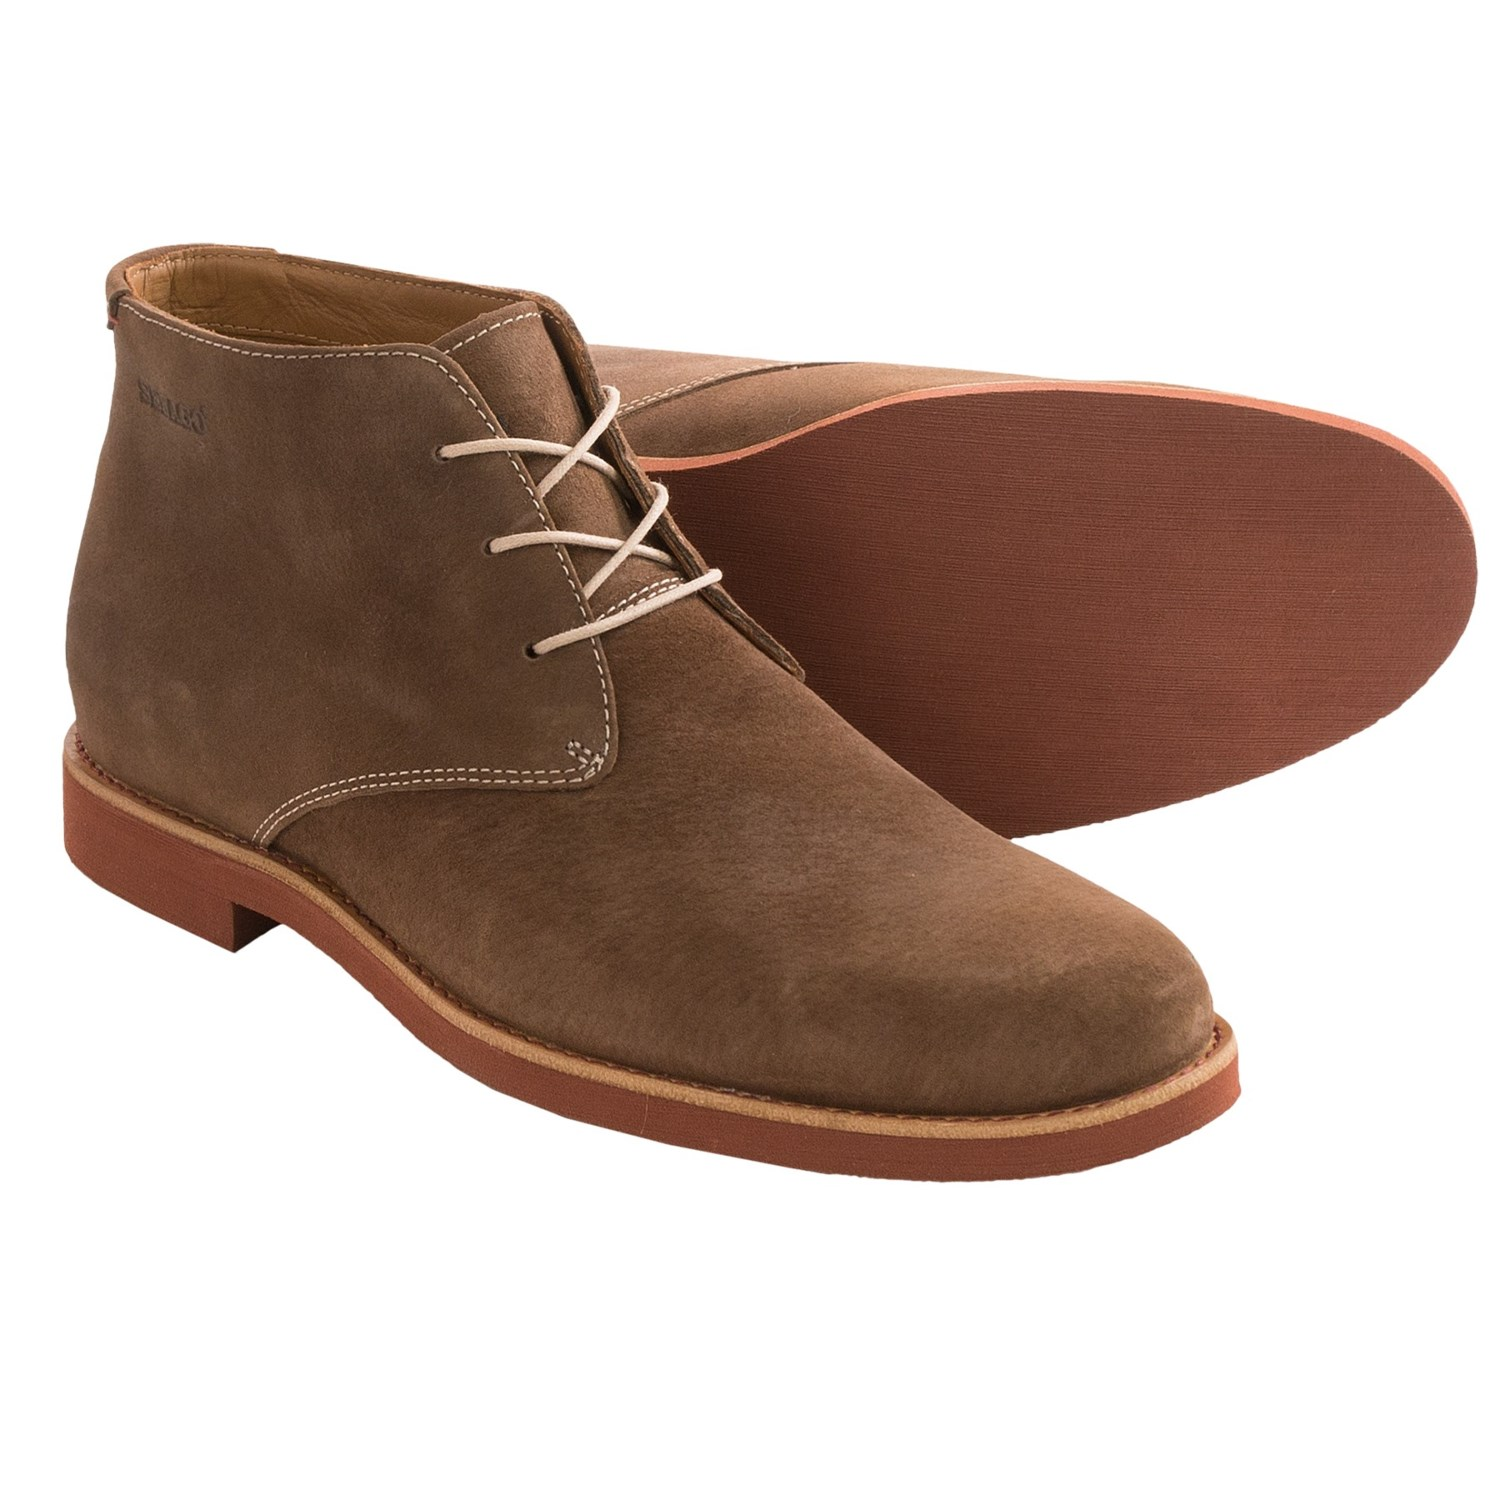 Men's chukka boots are made with the fashionable gentleman in mind. They are open-laced ankle boots with rubber or leather soles, and you can find great pairs at the best price right here.